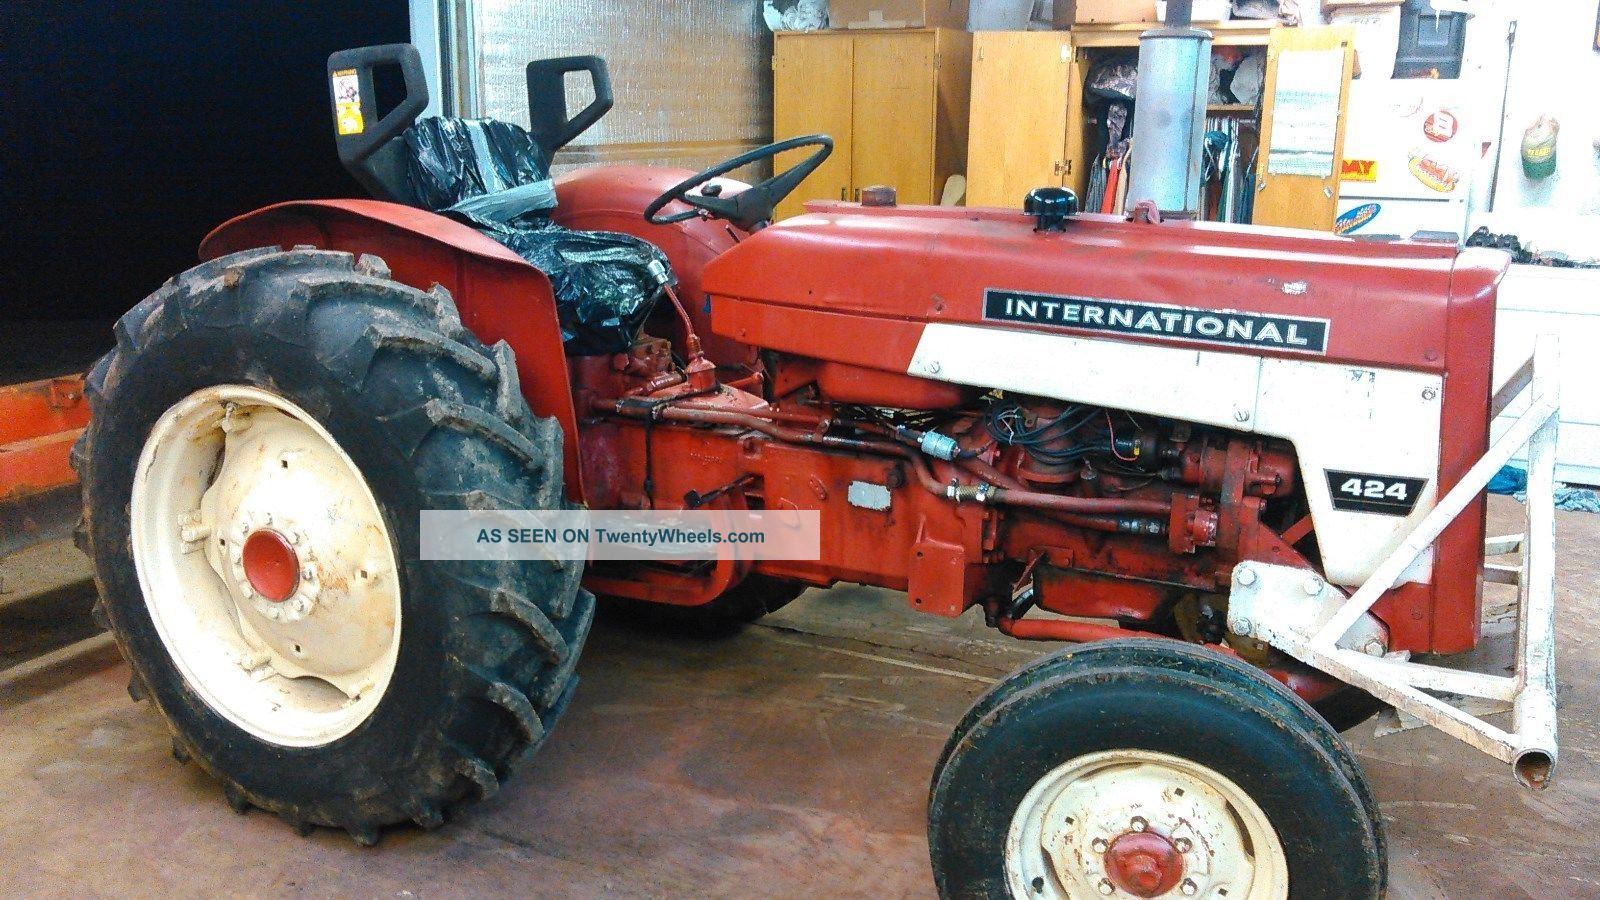 International 234 Tractor Wiring Diagram Will Be A Farmall 400 12 Volt Case Ih